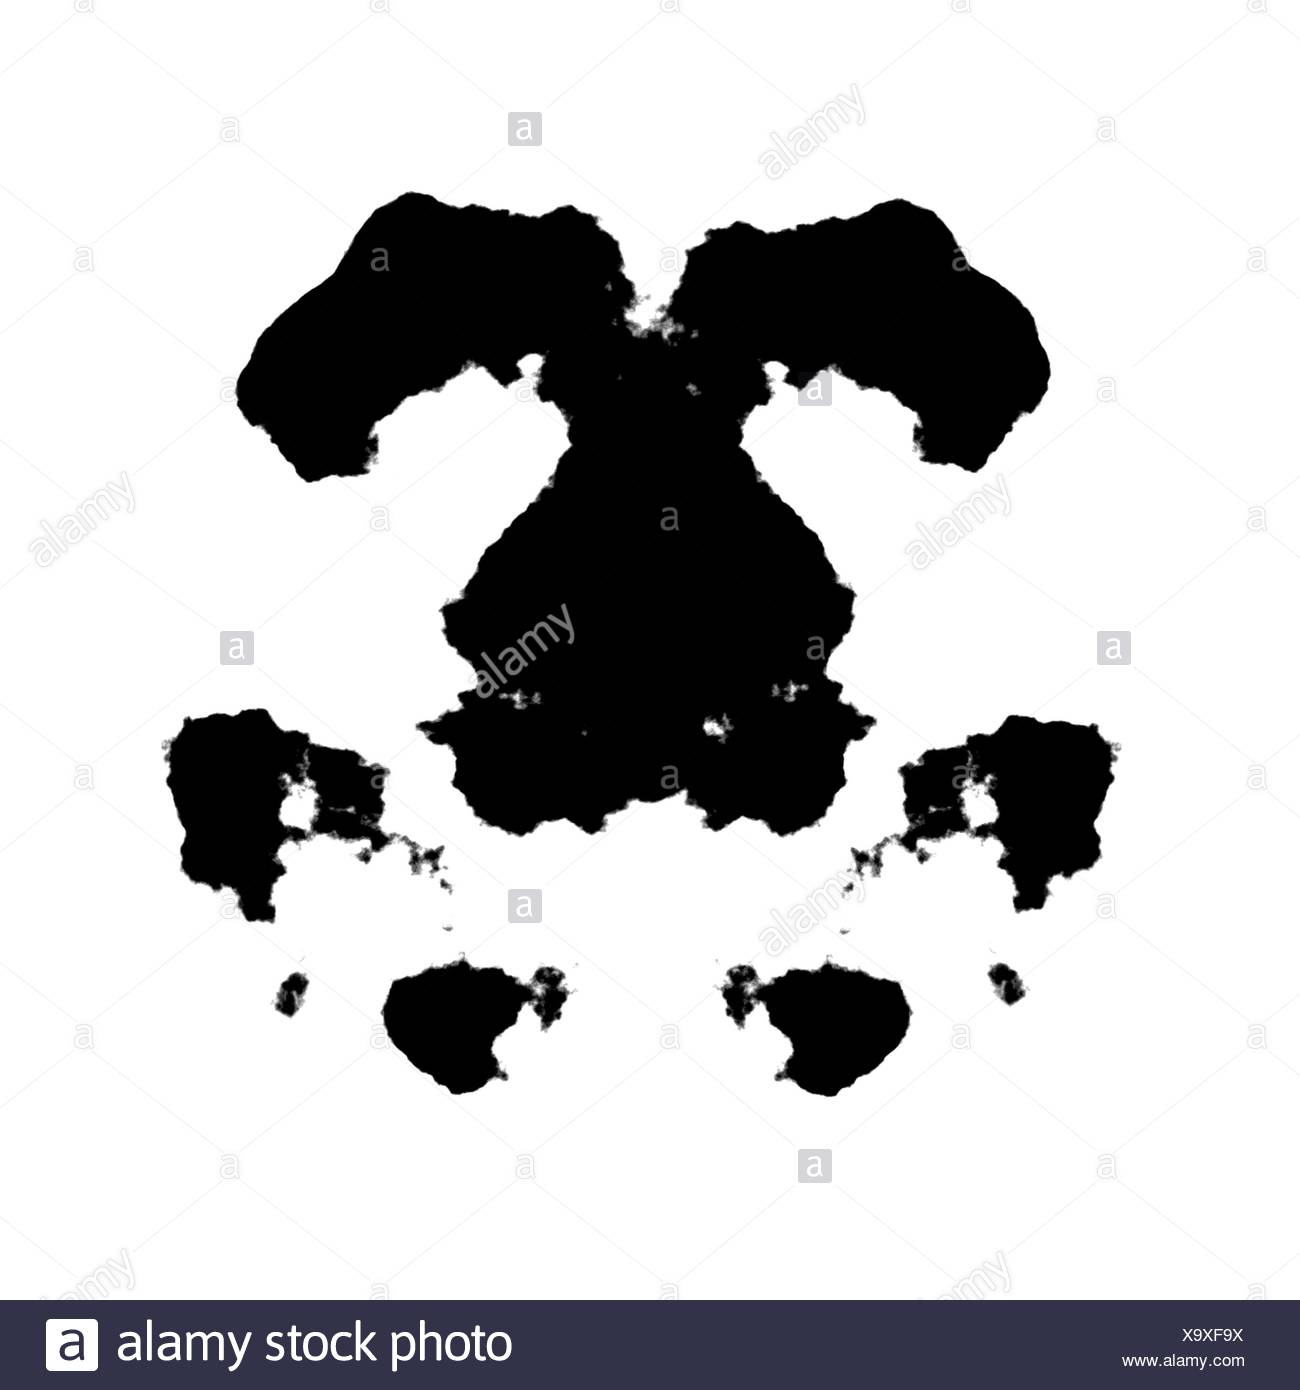 the well-known rorschach inkblot test is an example of a